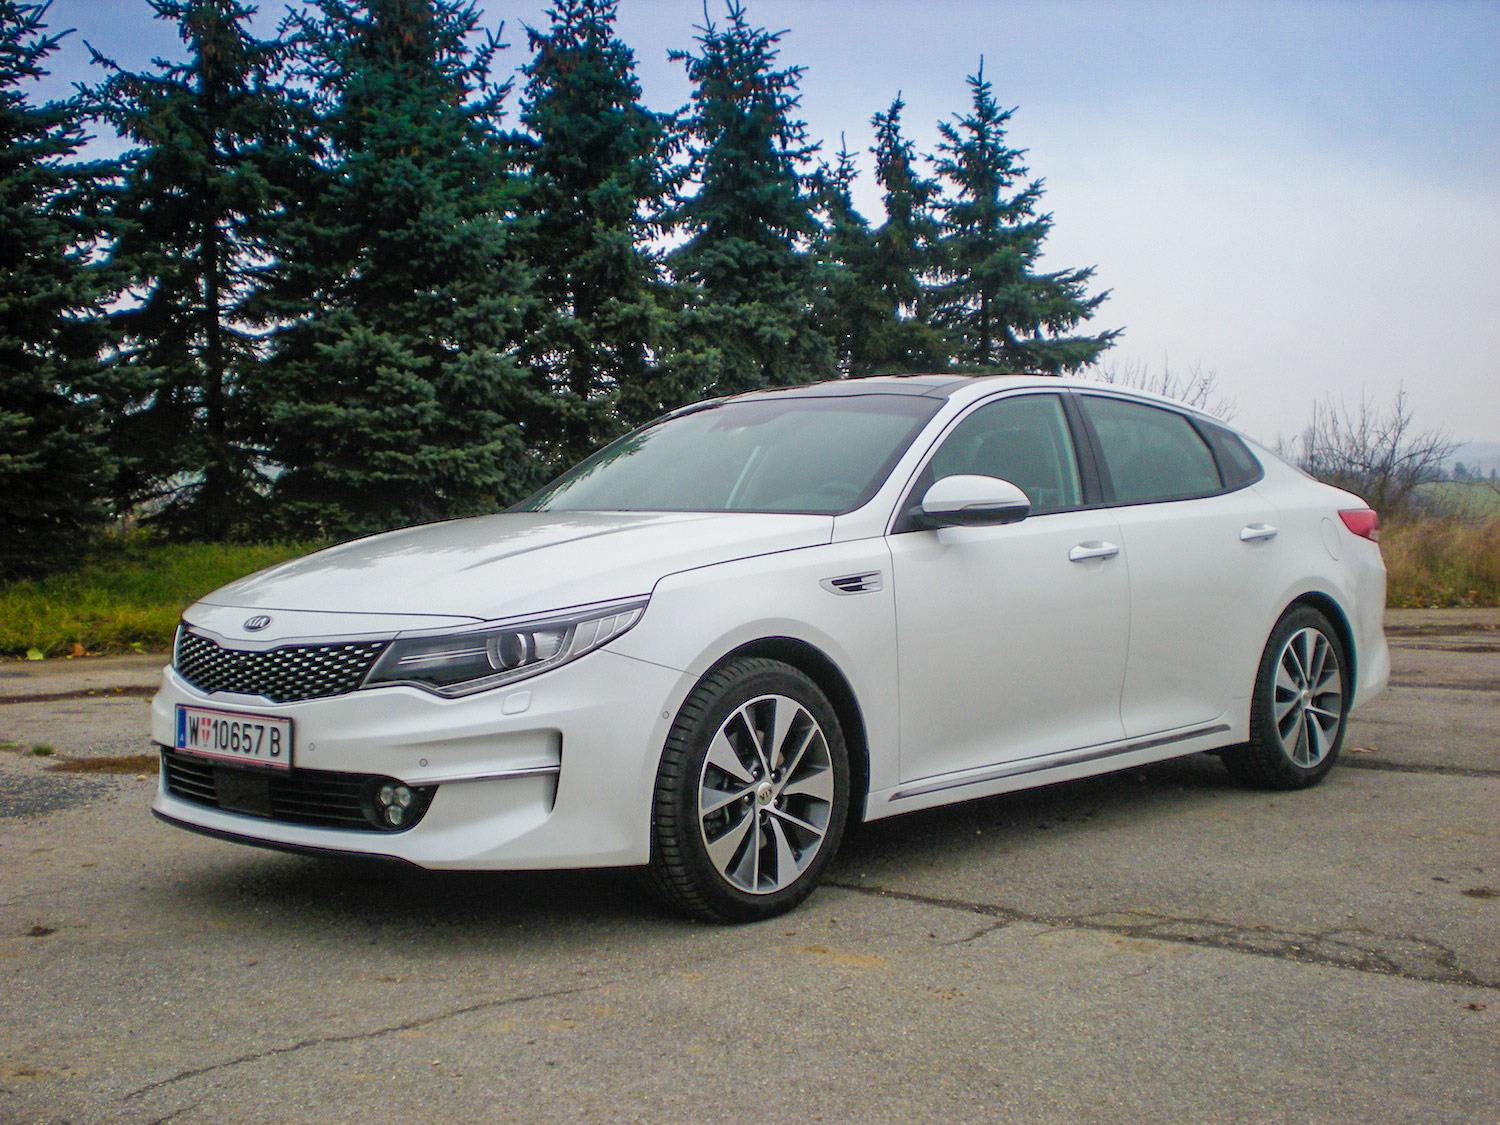 Kia Optima Autotest 02